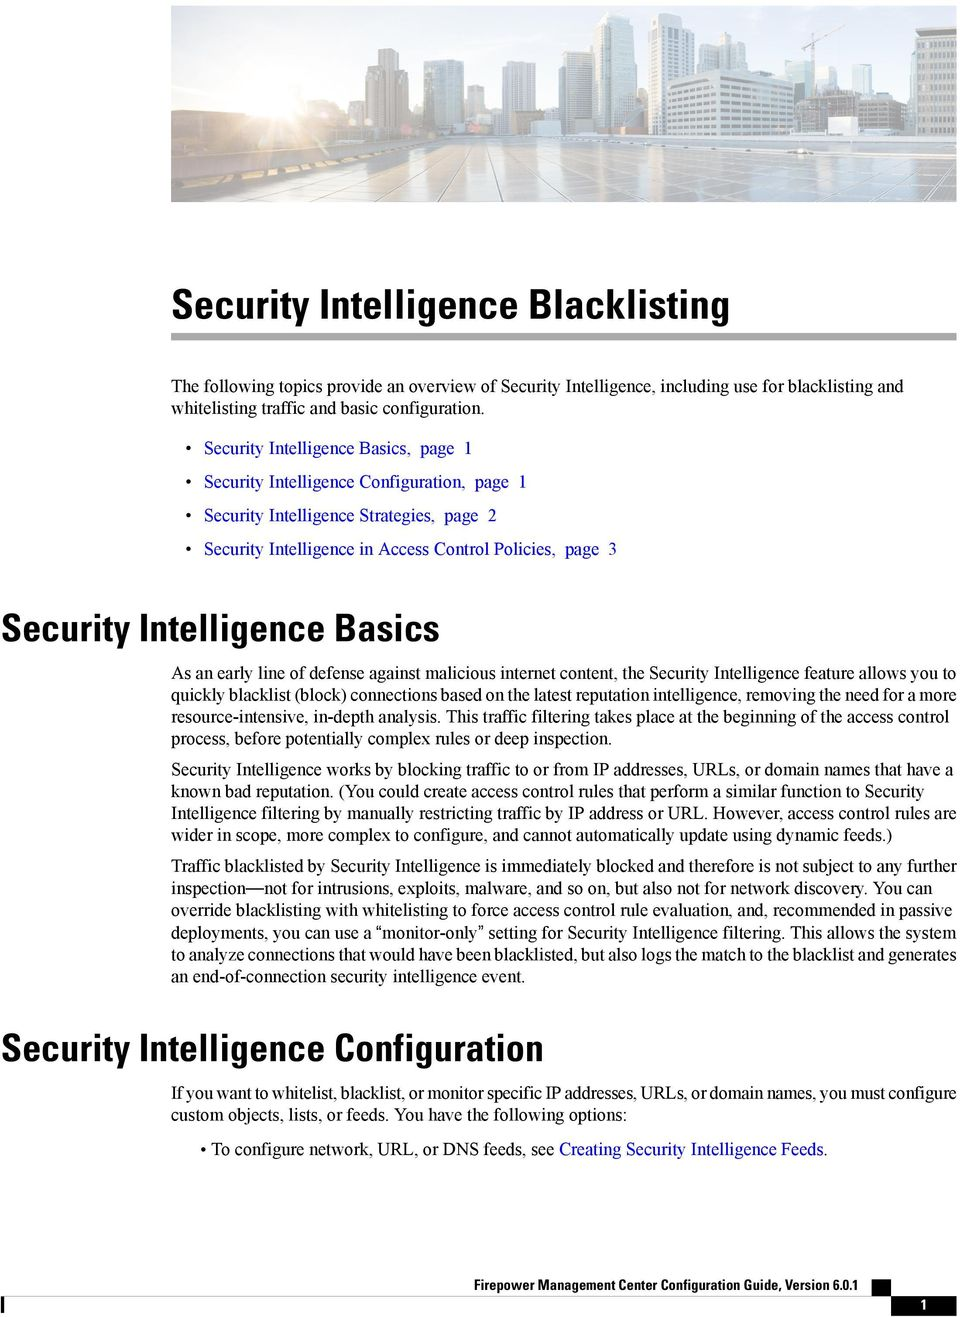 Security Intelligence Blacklisting - PDF